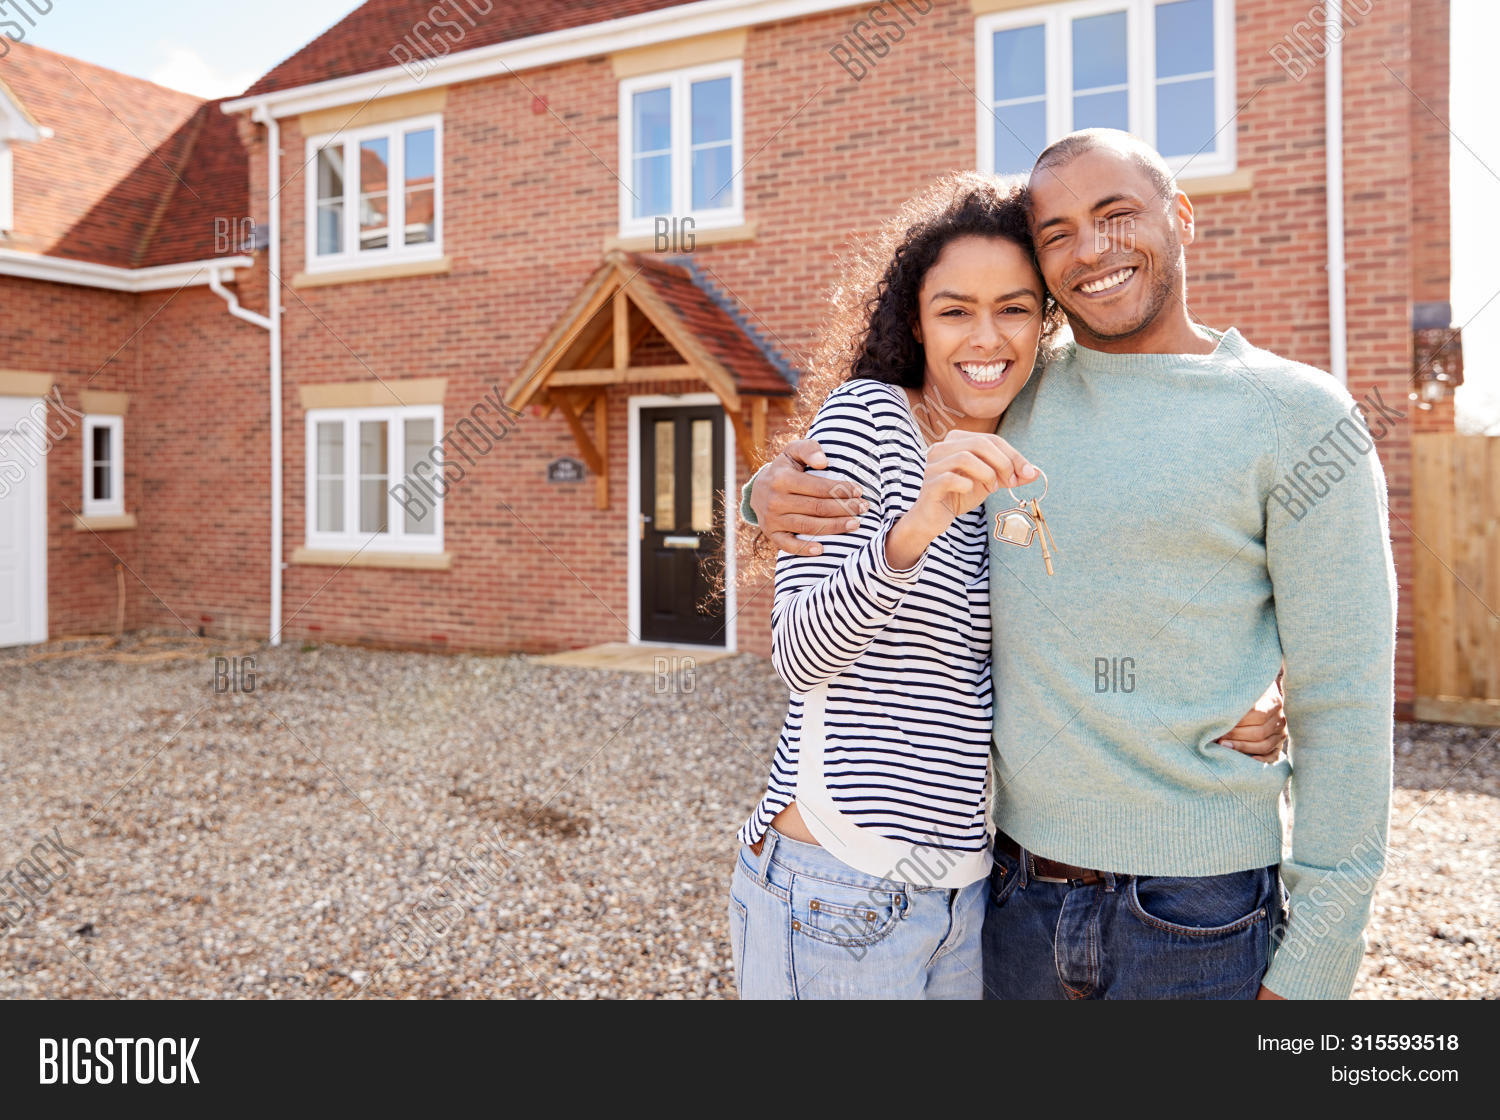 30s,40s,african american,black,buying,couple,excitement,female,first time buyer,forties,front view,happy,help to buy,holding,home,horizontal,house,house buying,hug,hugging,key,key fob,key ring,looking at camera,male,man,men,mortgage,moving,moving day,moving in,new home,outdoors,people,person,portrait,property,real estate,rental,renting,smiling,thirties,together,two people,waist up,woman,women